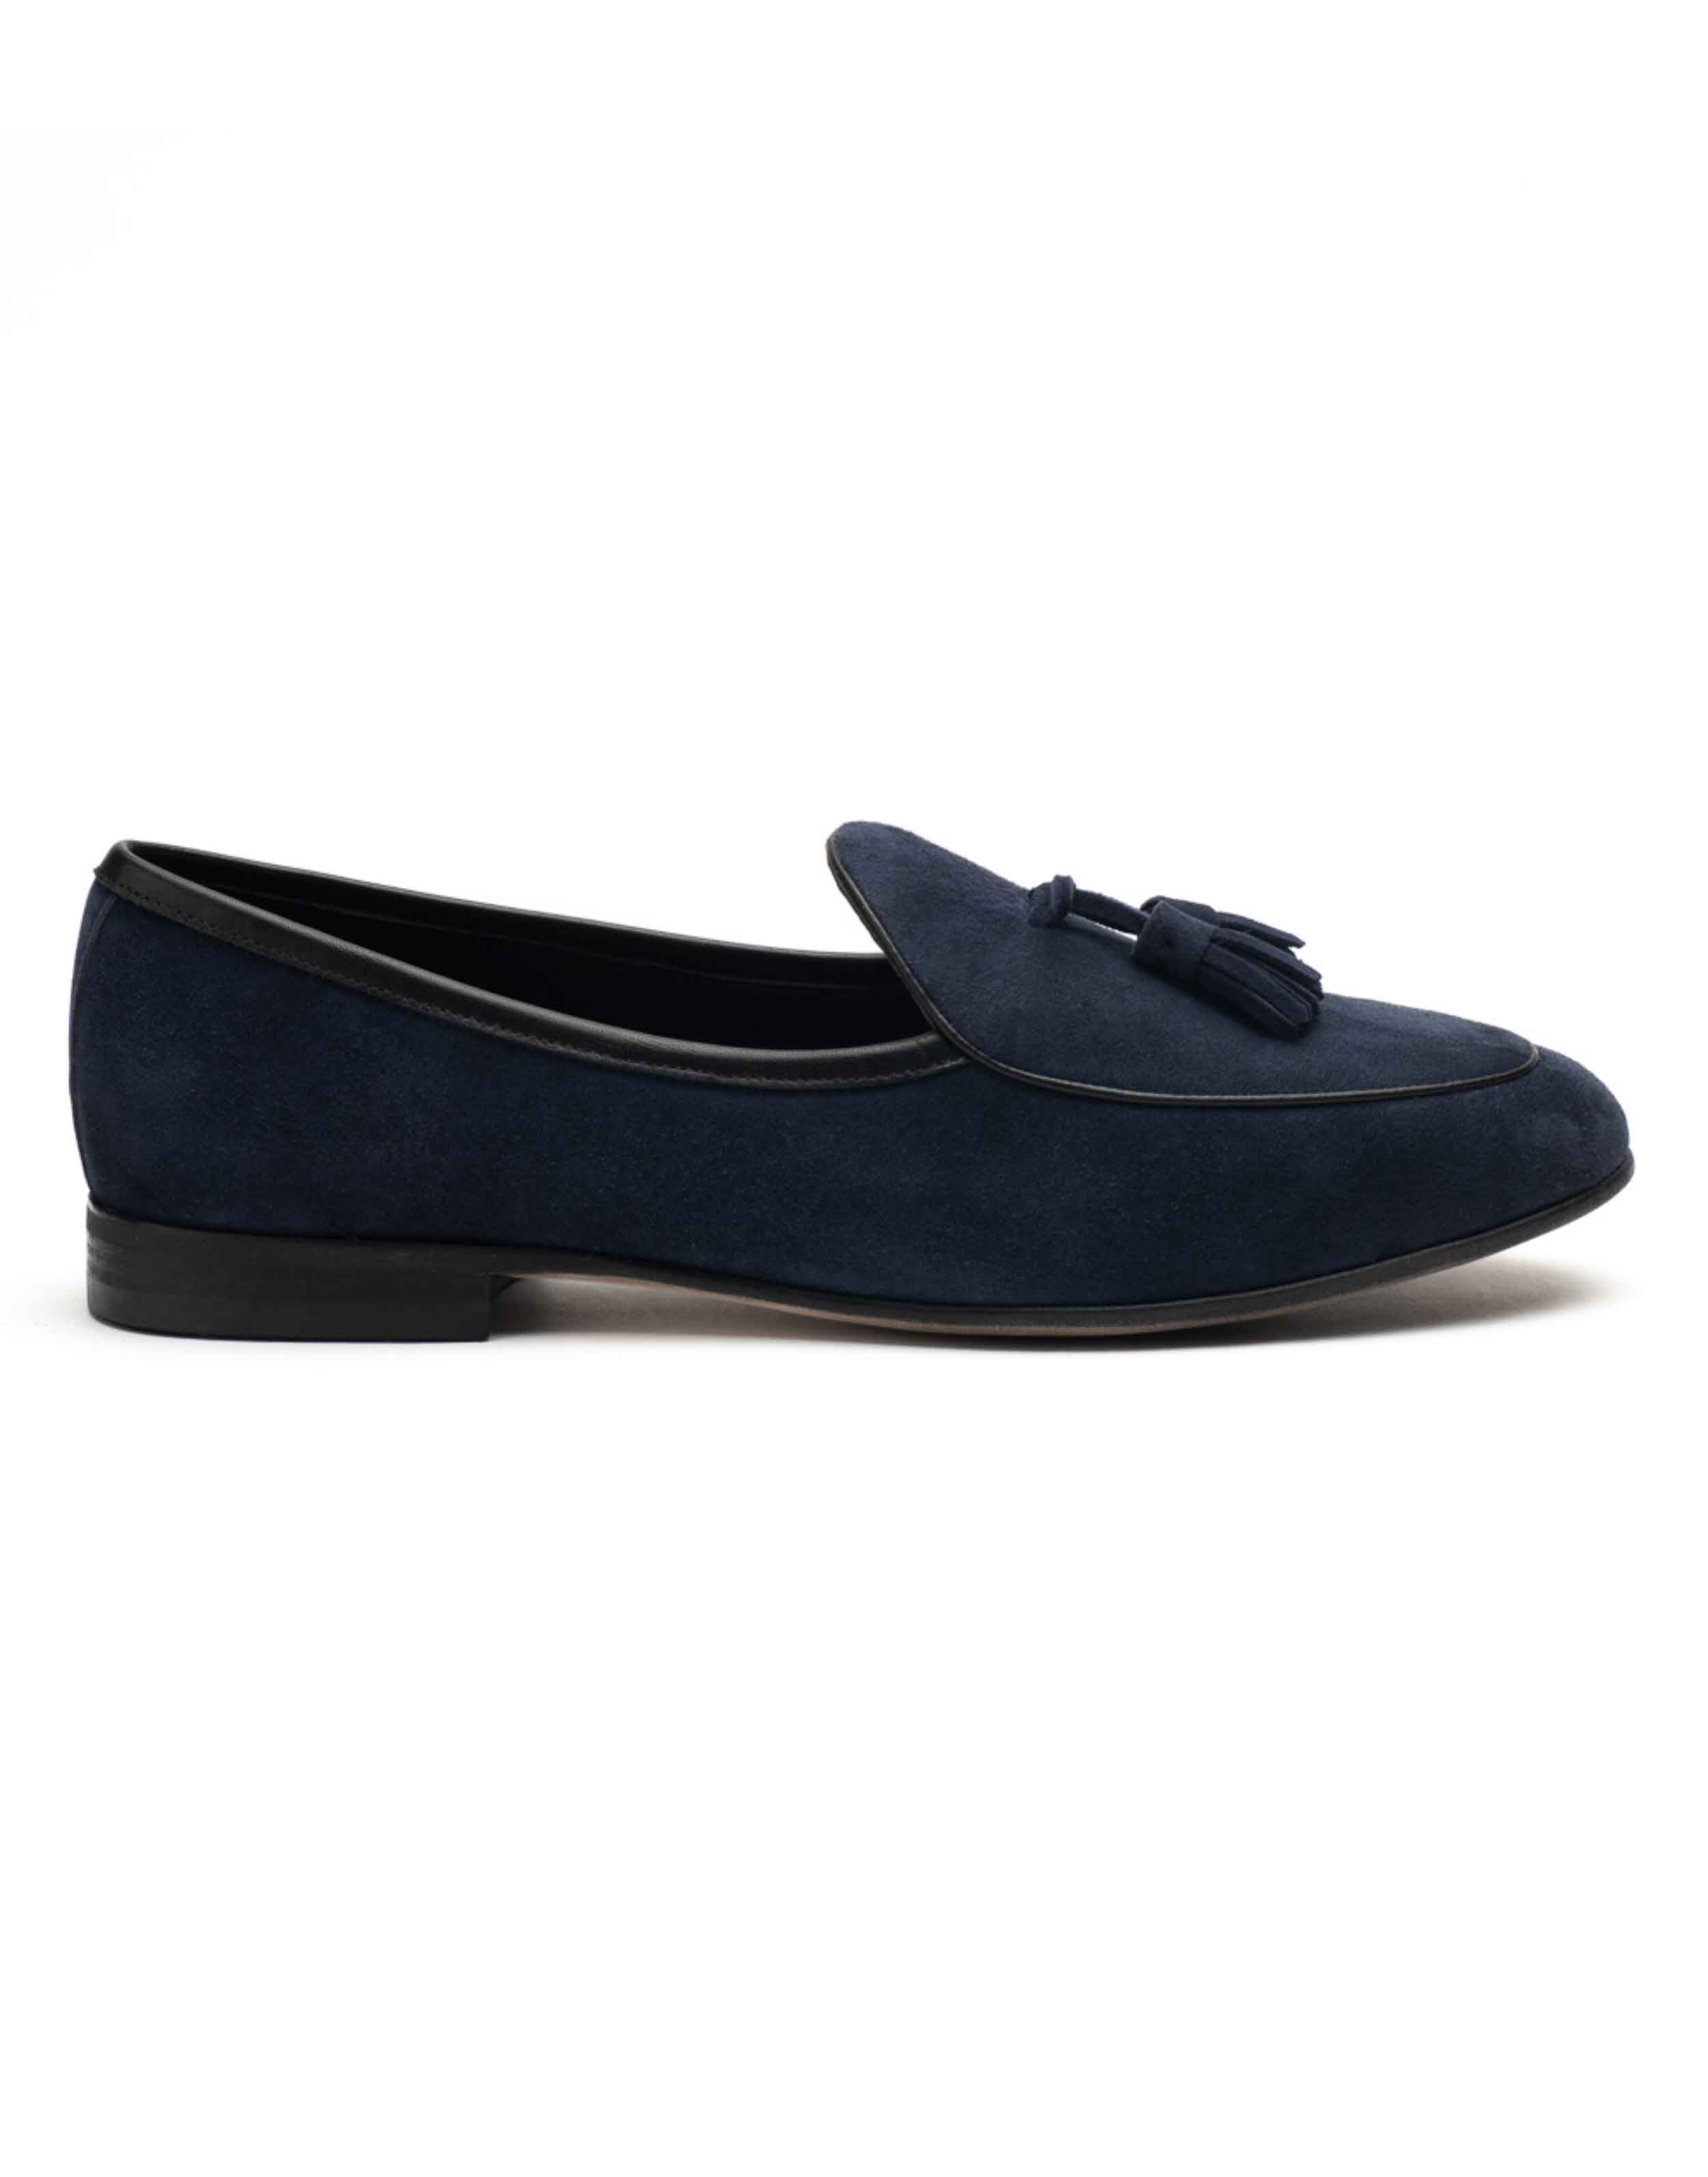 Heel _ Buckle London-HBDARM074-Sliced Navy Suede Loafers-Navy-1